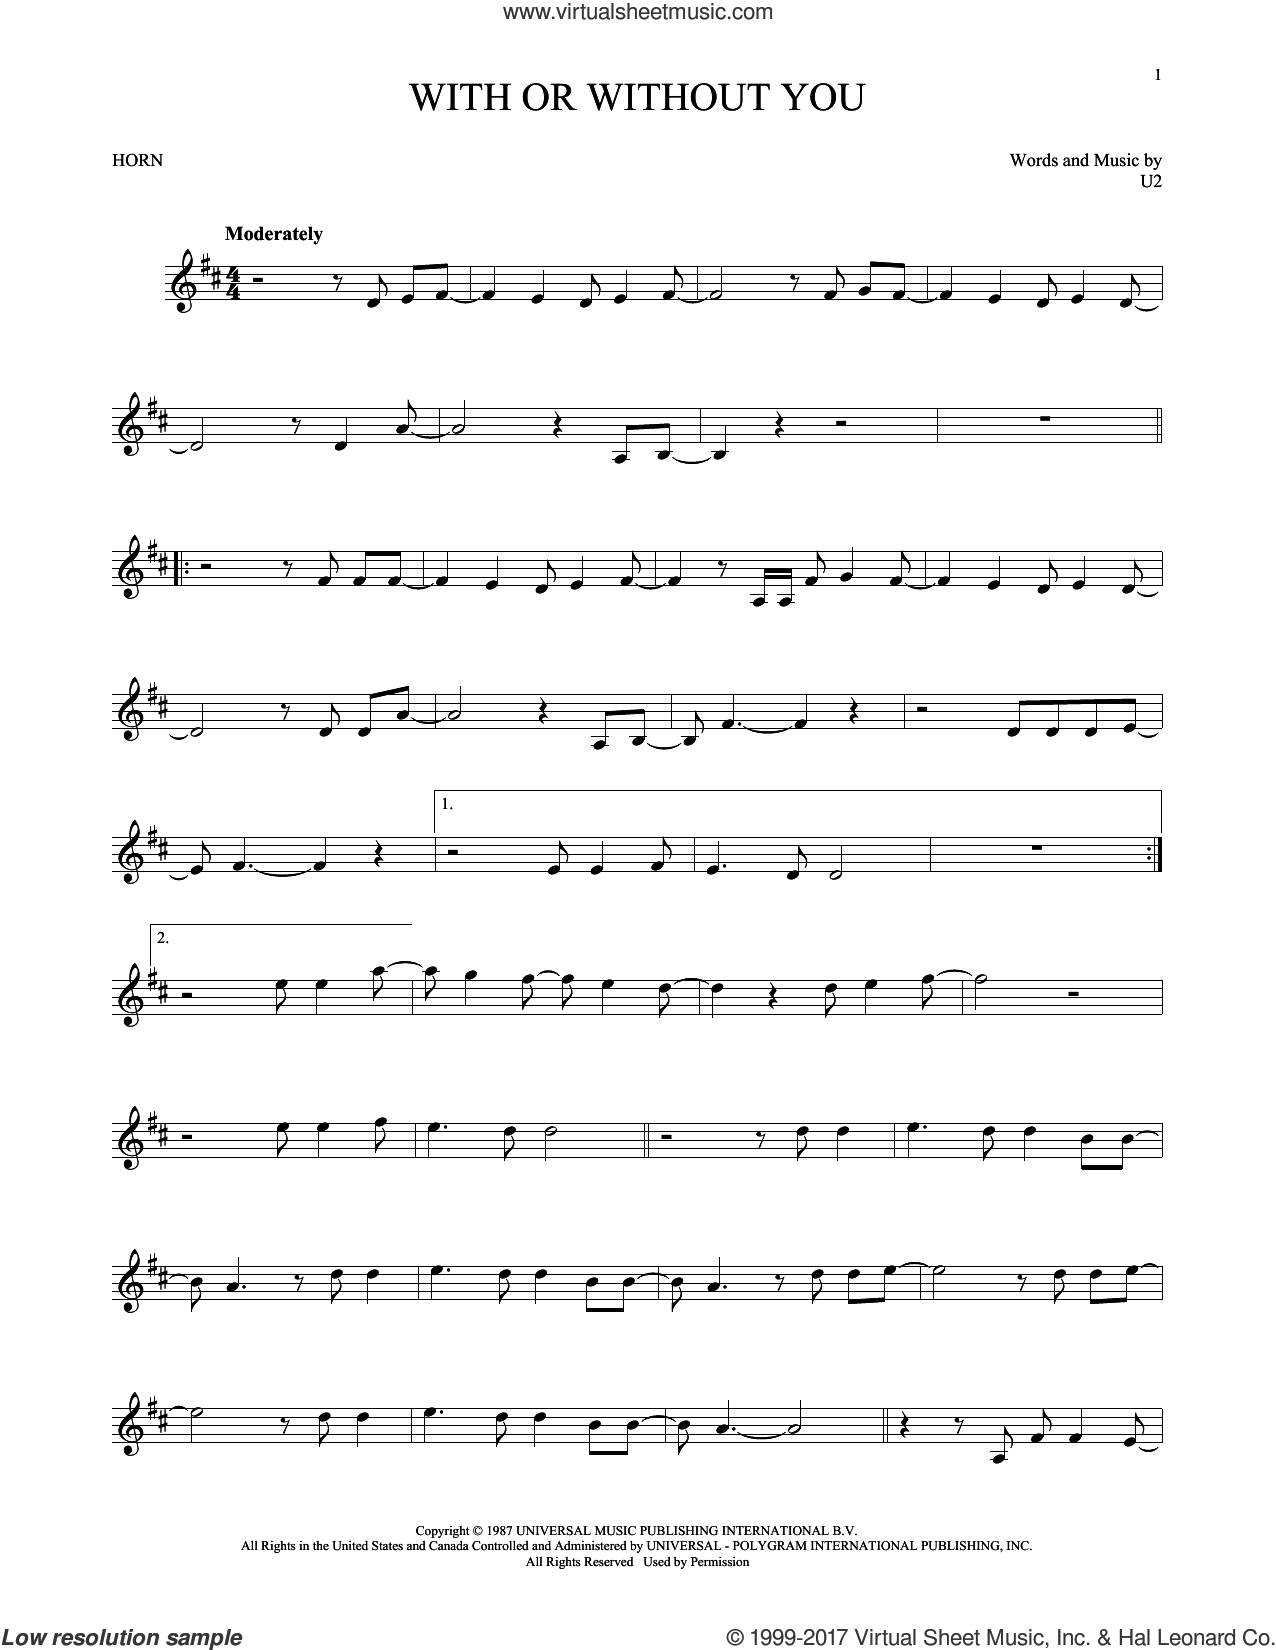 With Or Without You sheet music for horn solo by U2, intermediate skill level